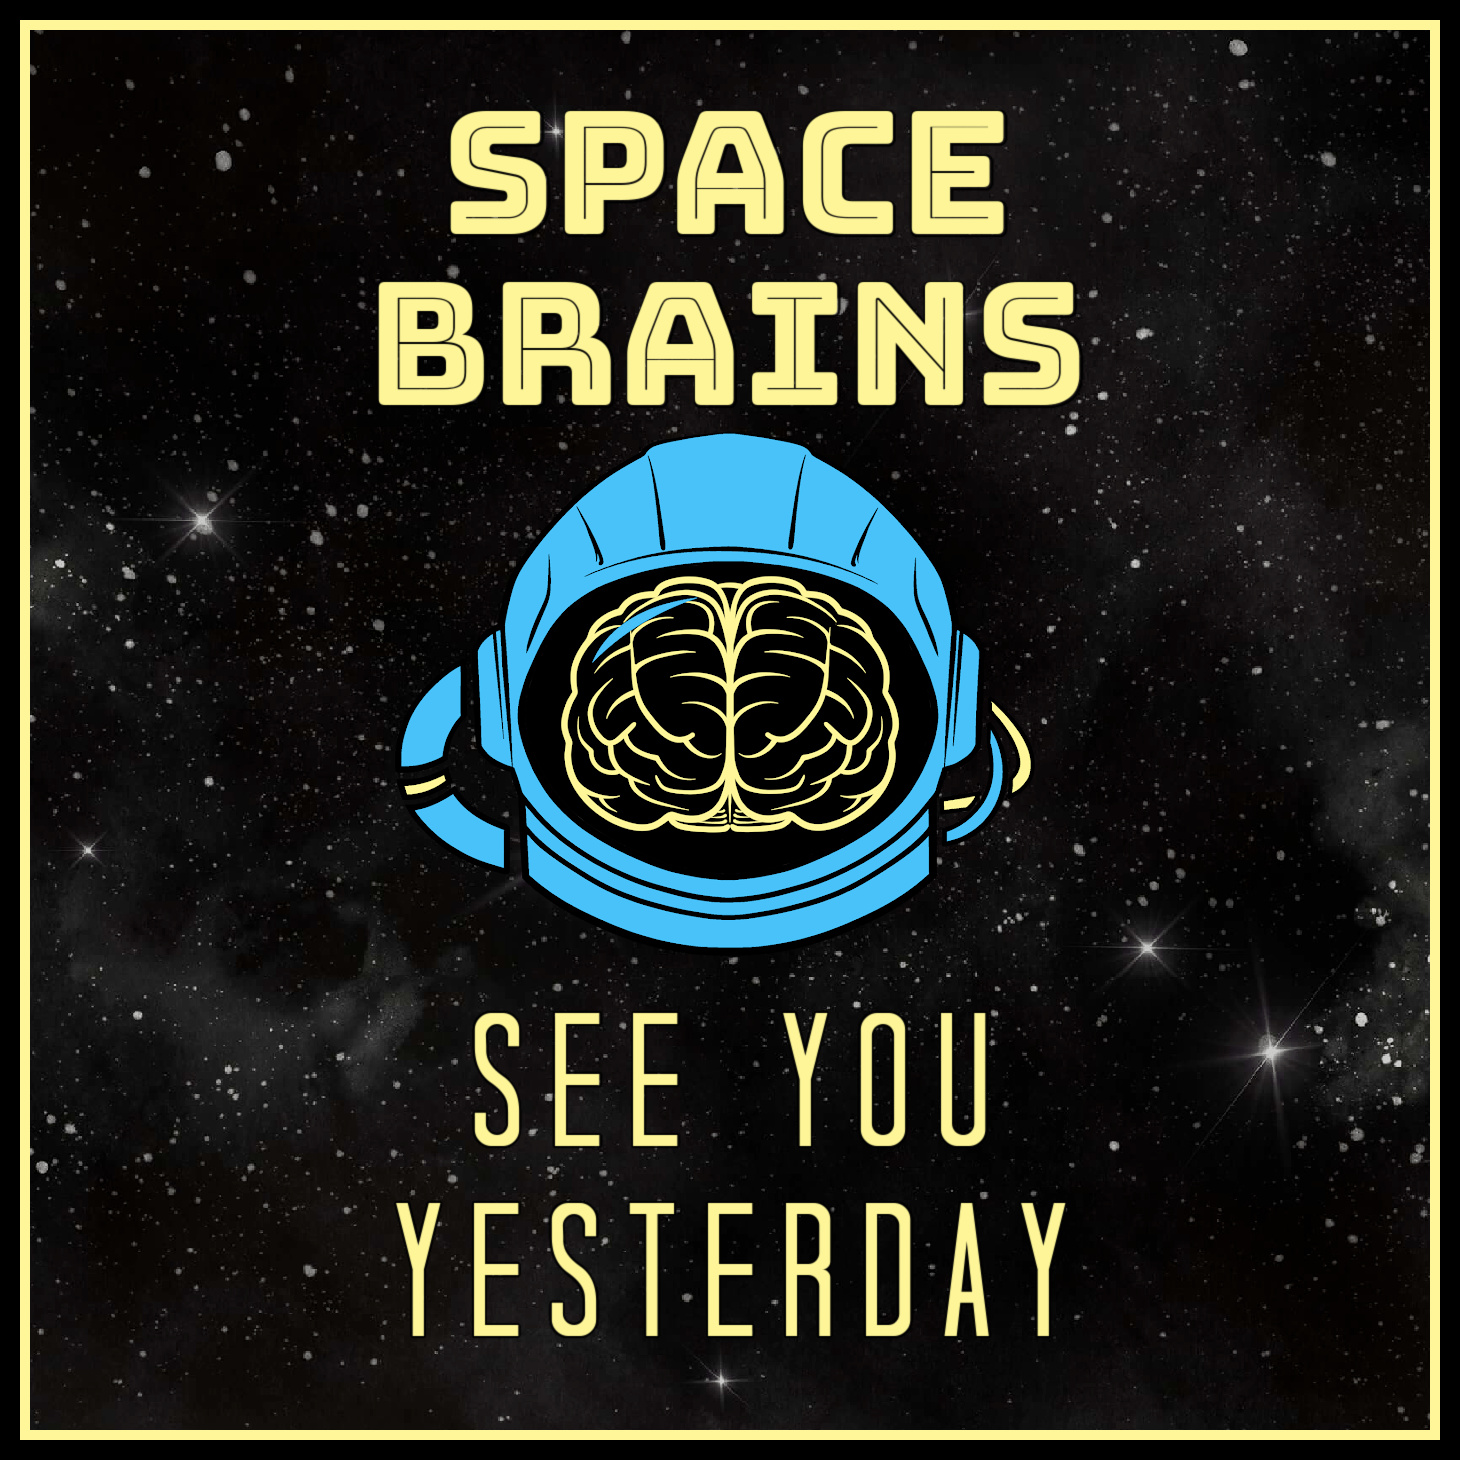 Space Brains - 24 - See You Yesterday